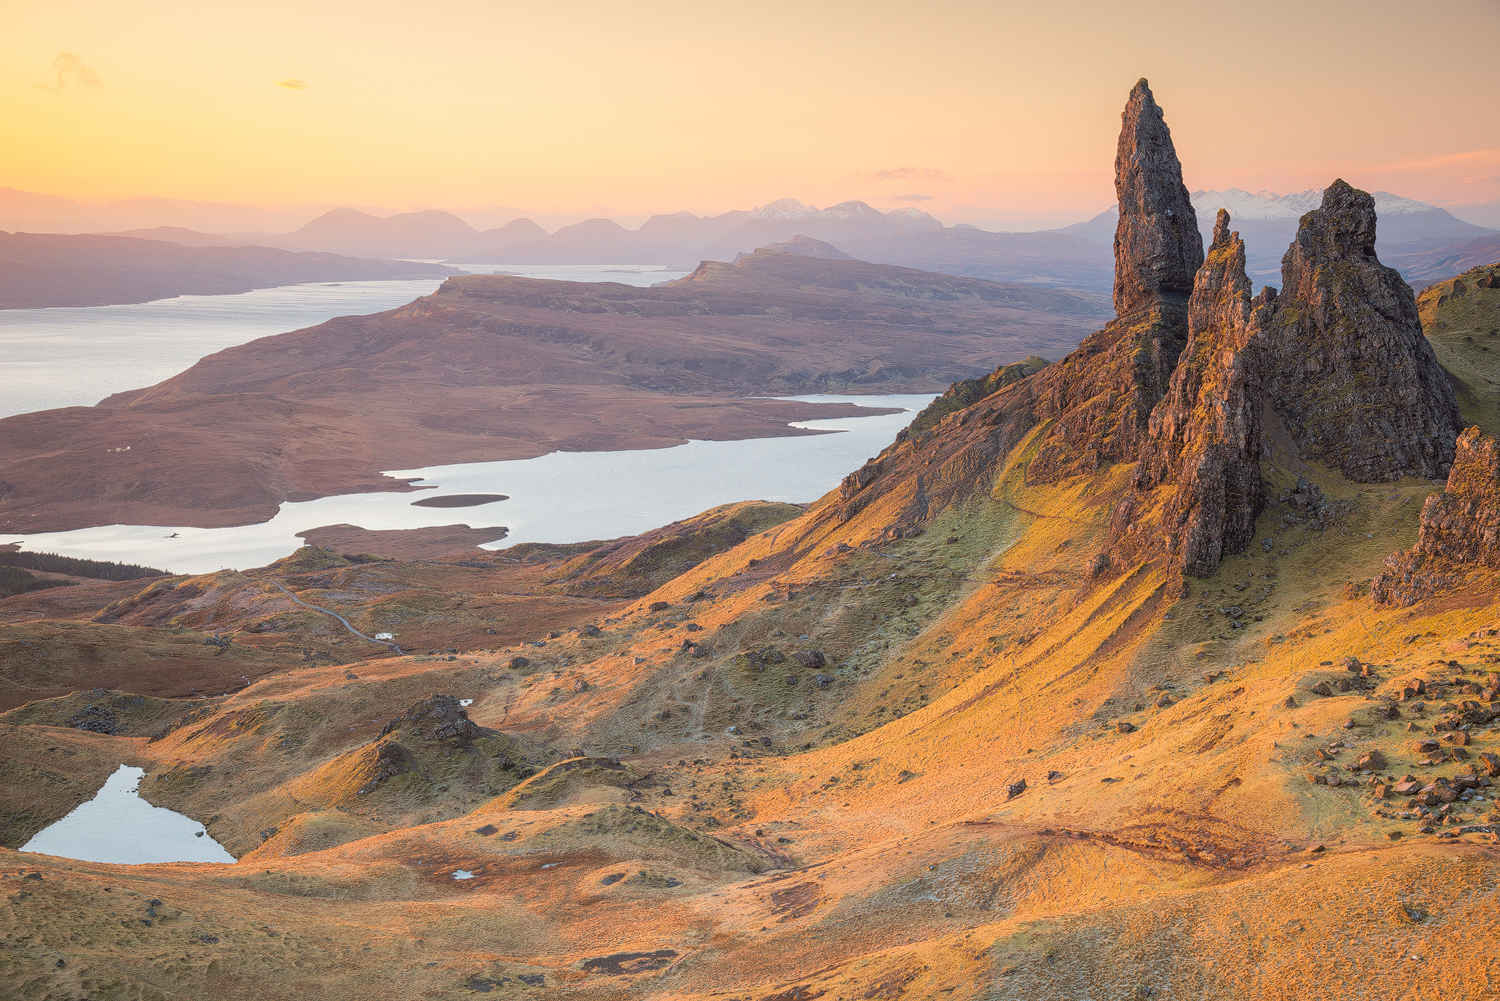 The Storr, Trotternish peninsula on the Isle of Skye (Scotland)